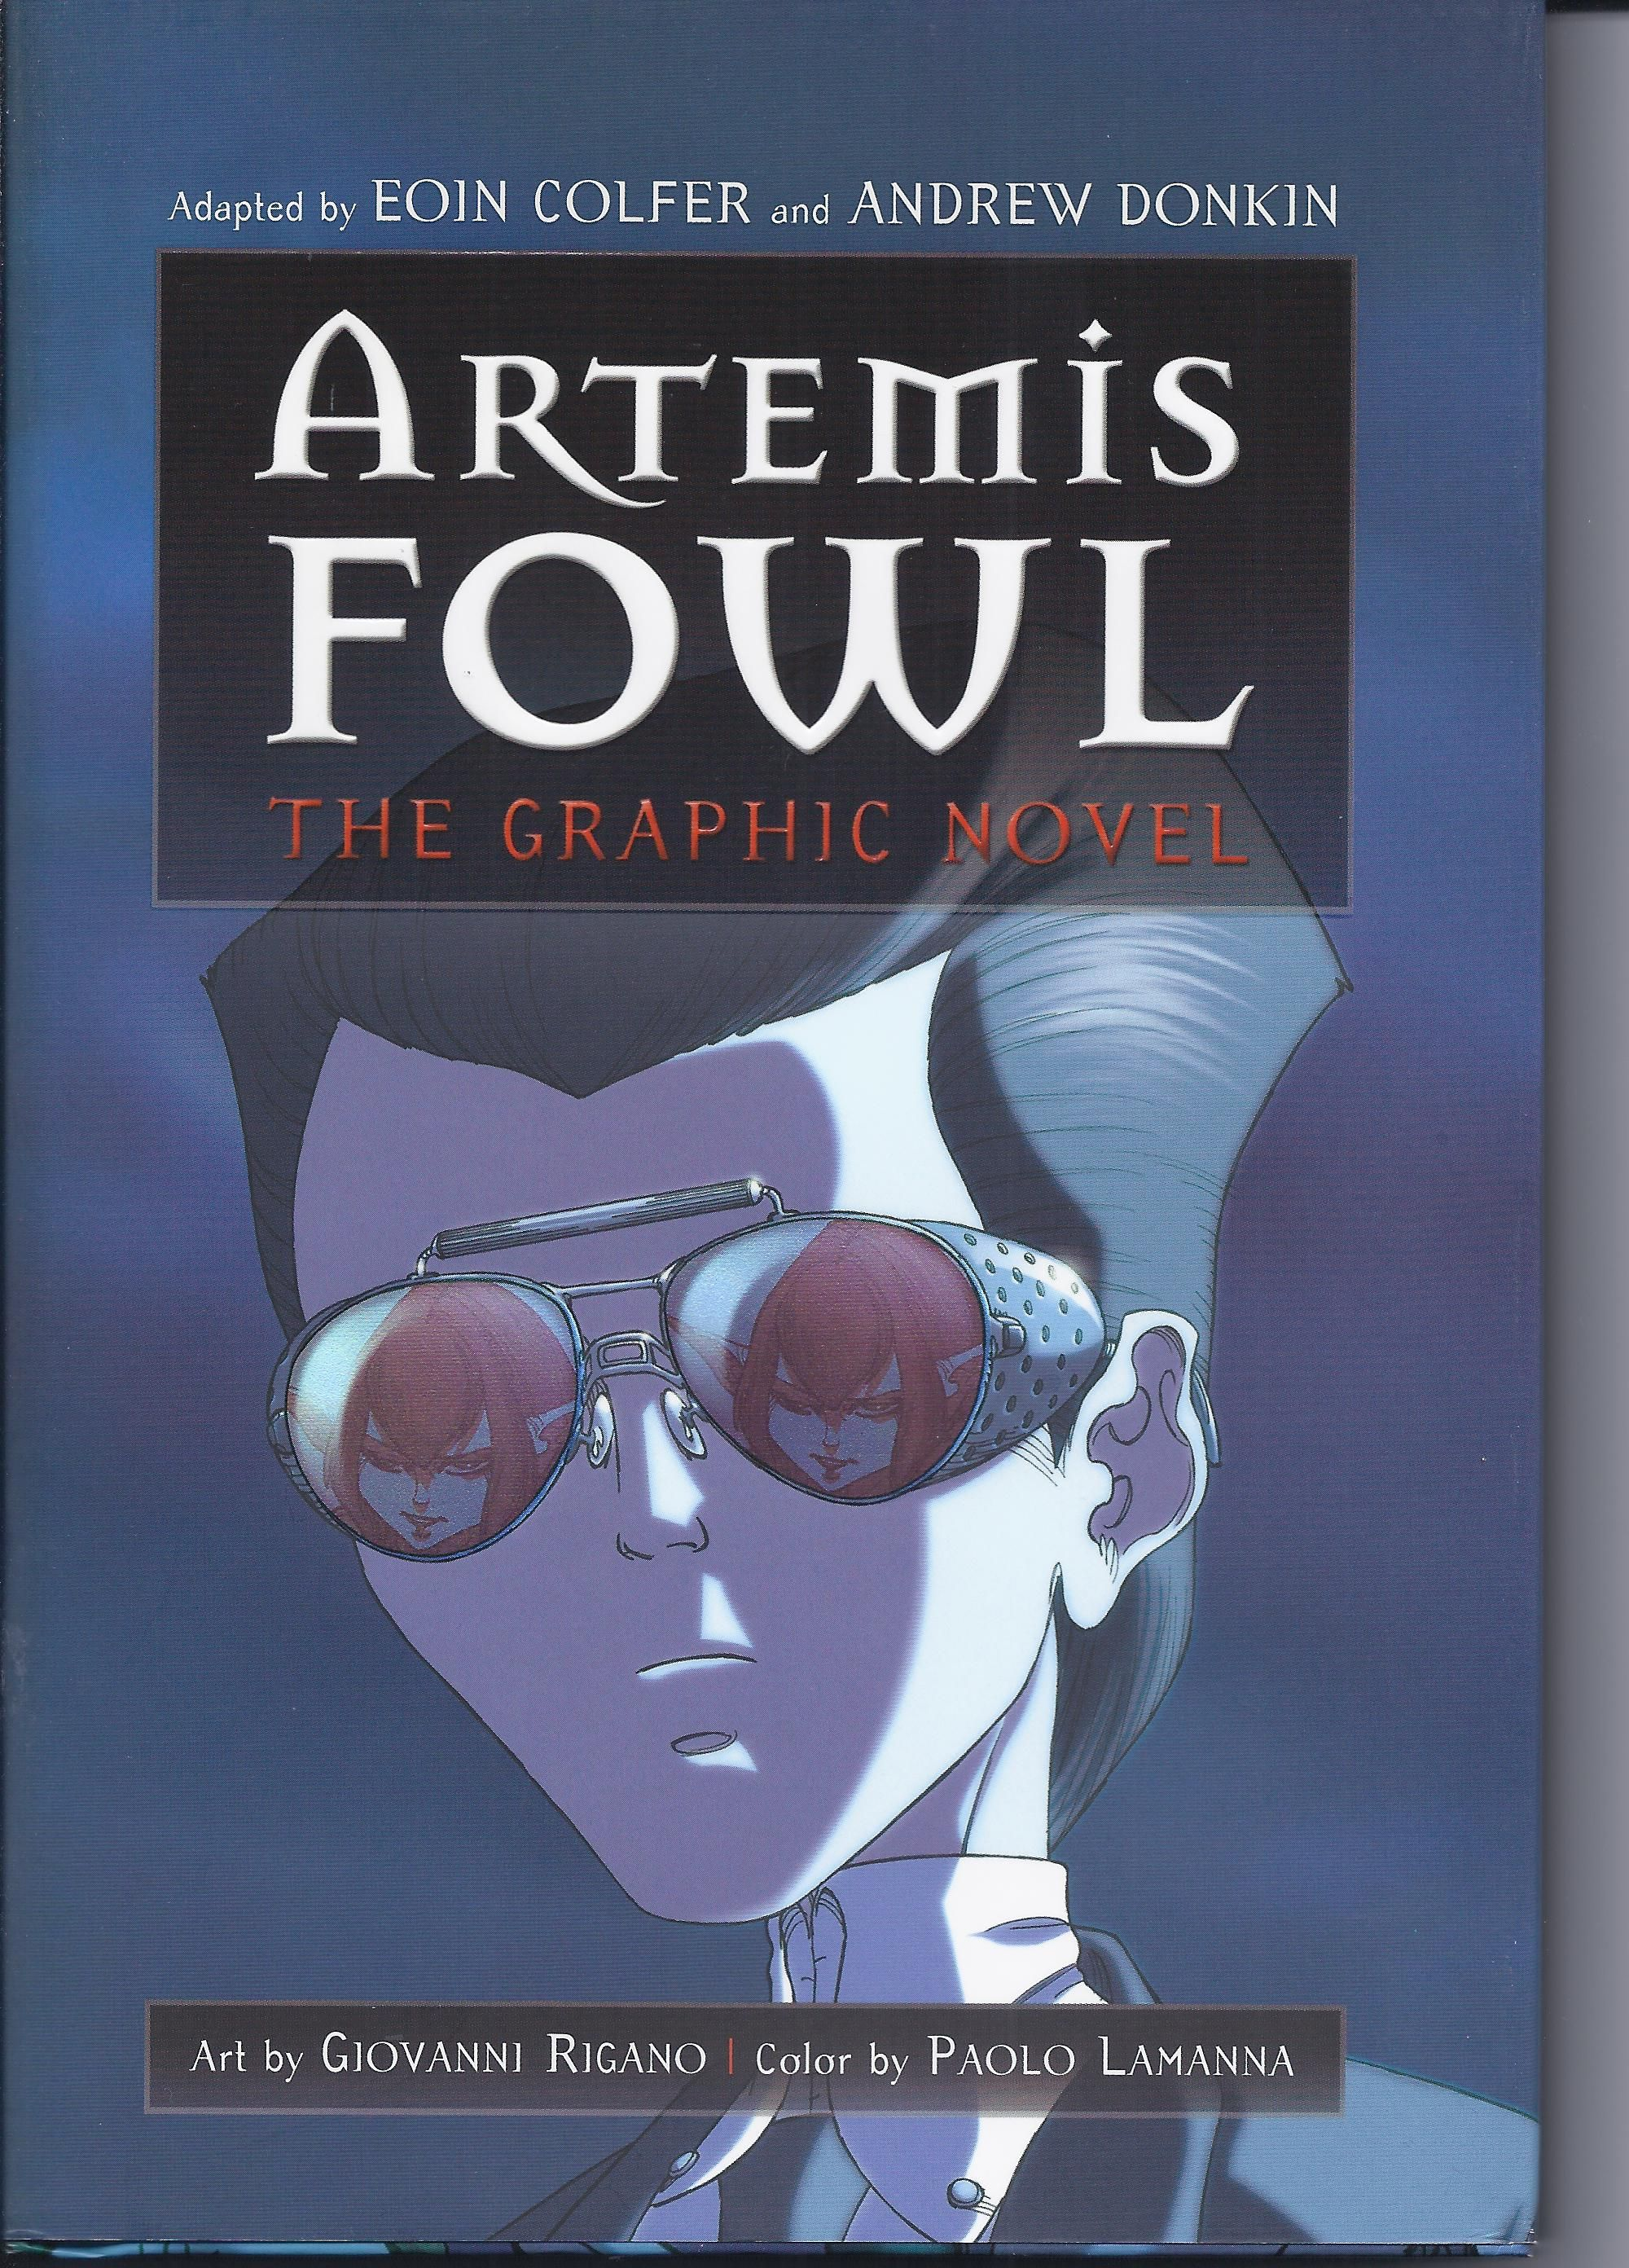 Cover To The Hyperion American Edition Of The First Artemis Fowl Graphic  Novel By Eoin